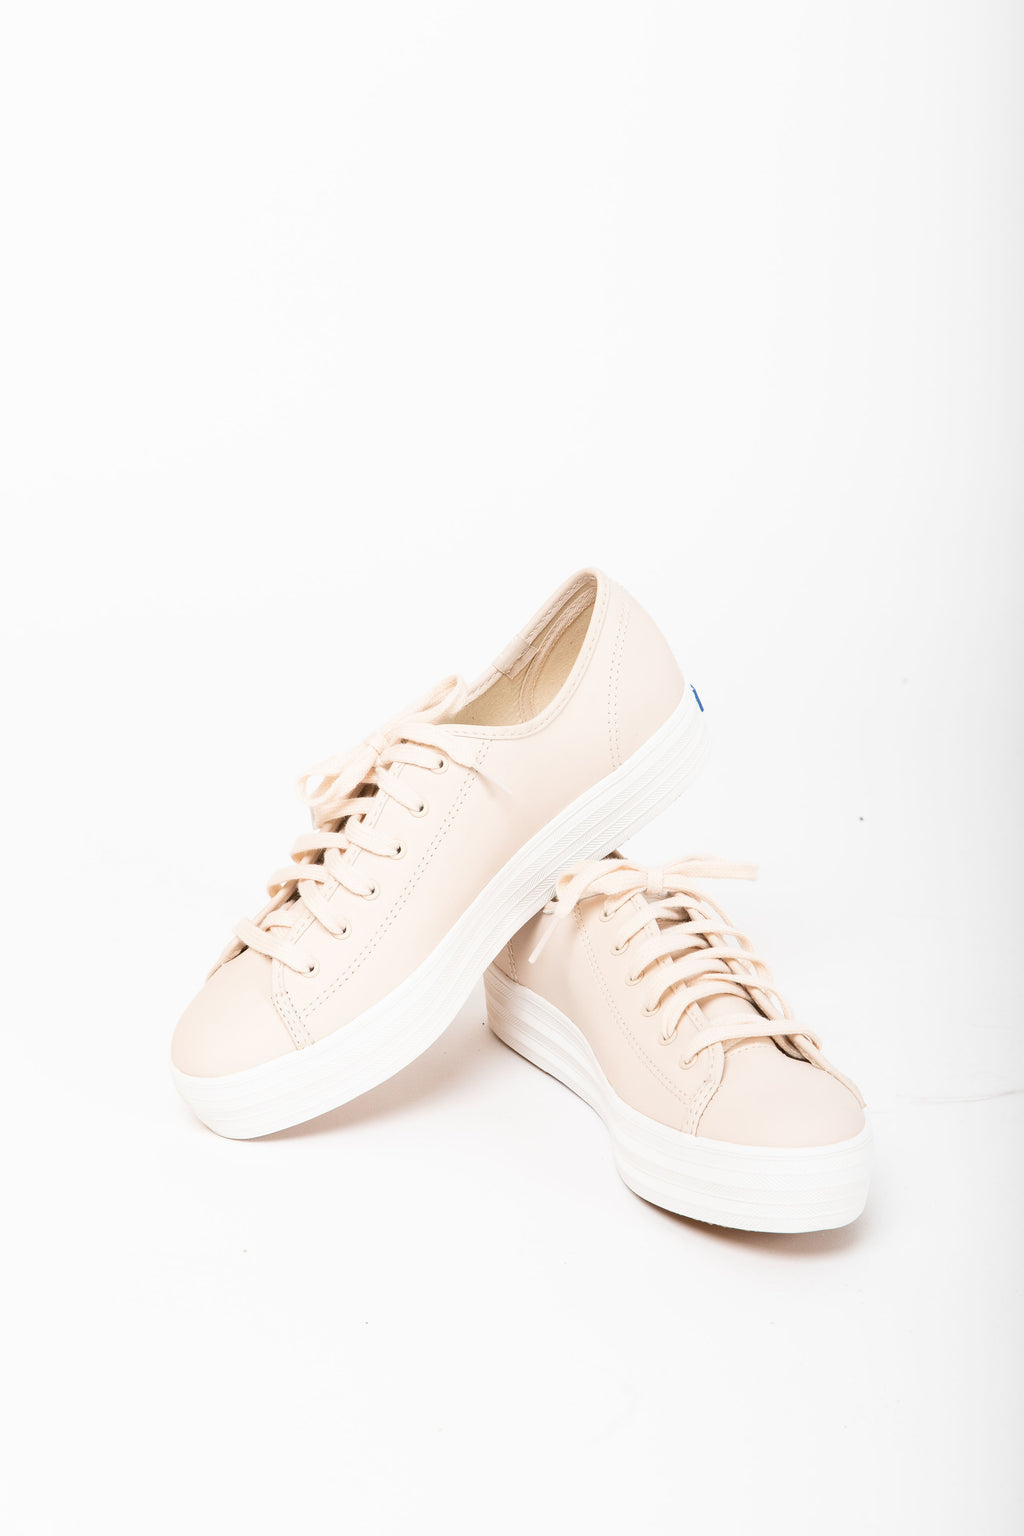 Keds: Triple Kick Leather Sneaker in Blush